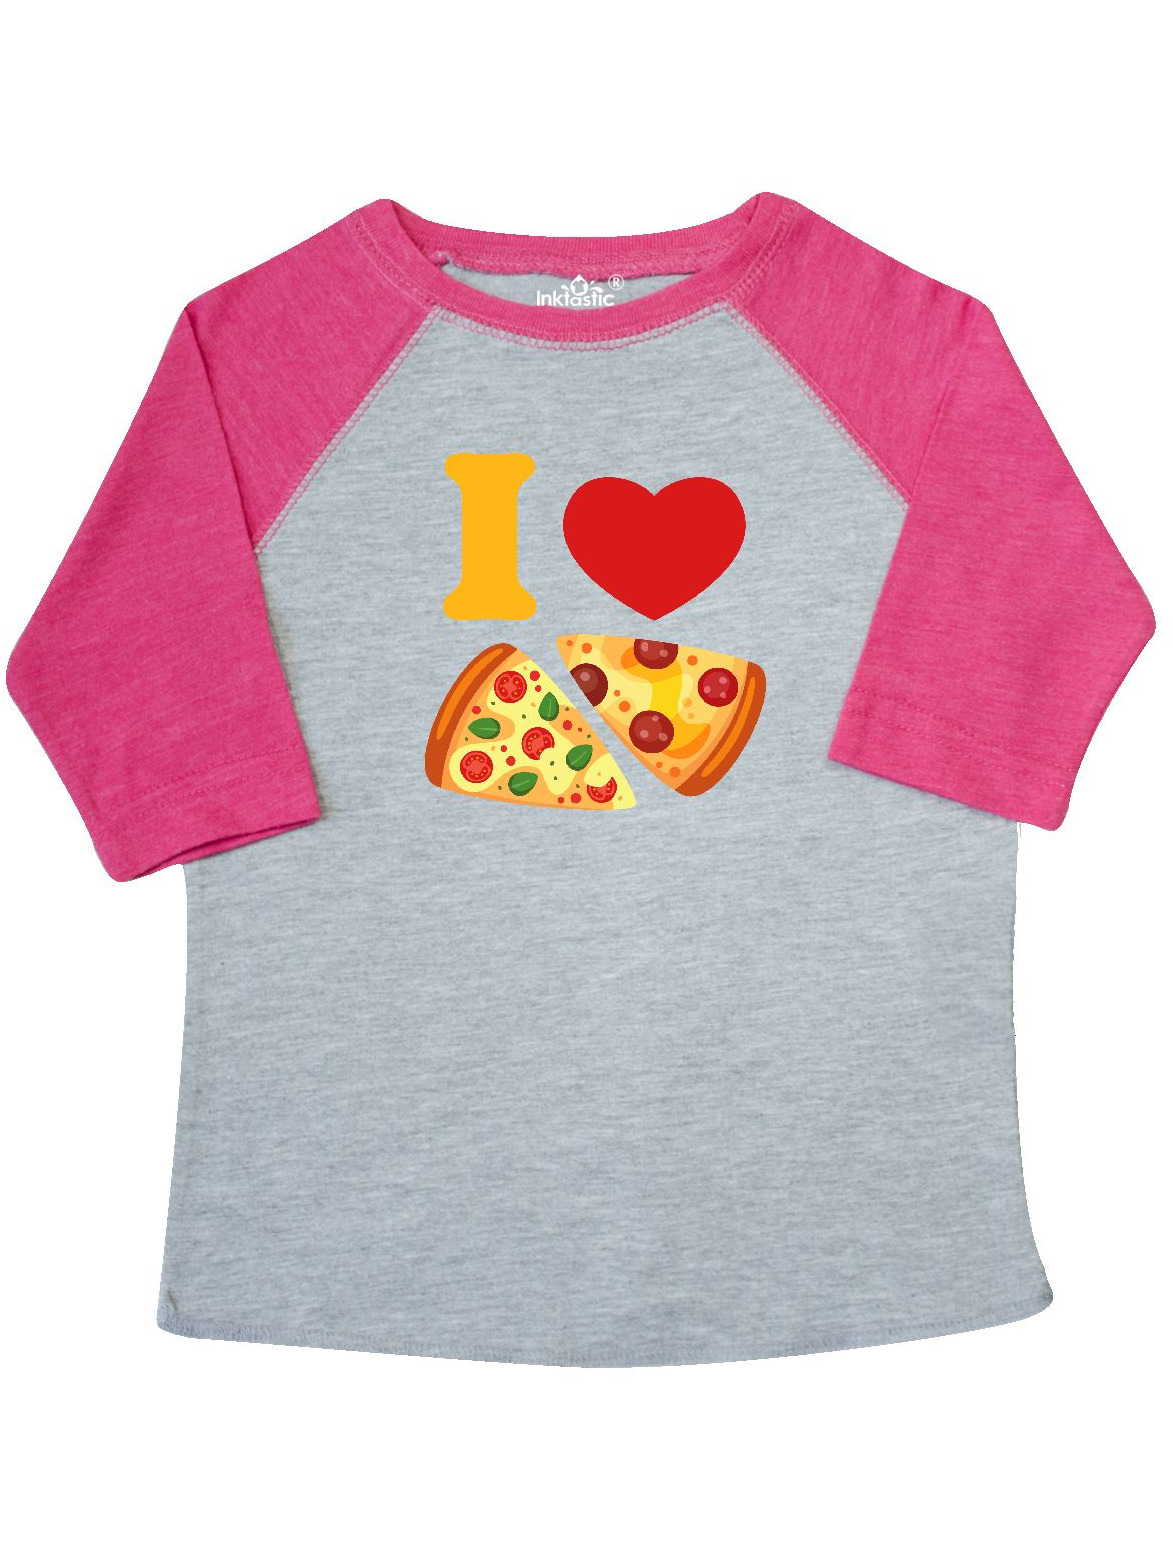 Foodie Funny T Pizza My Heart pepperoni kids school love tee sassy girls boys hipster Shirt Bodysuit Infant or Toddler